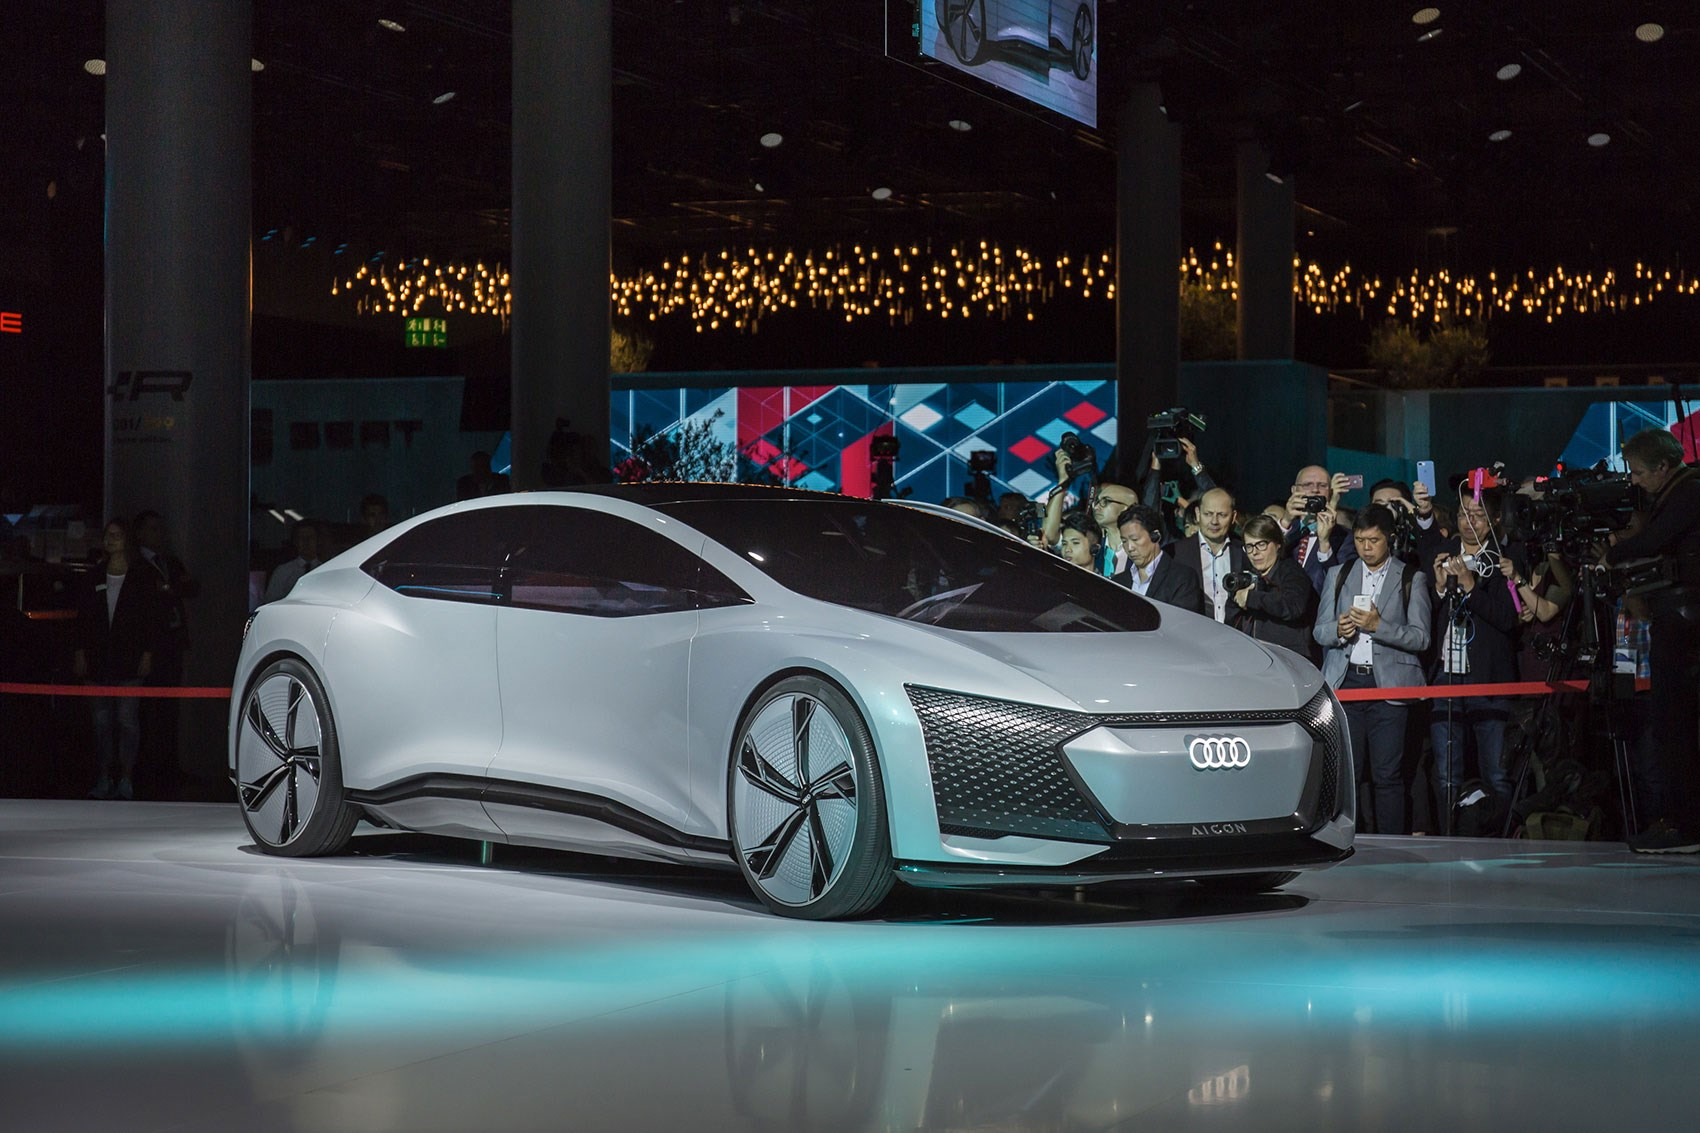 Audi aicon and elaine concepts at 2017 frankfurt motor for Concept expo